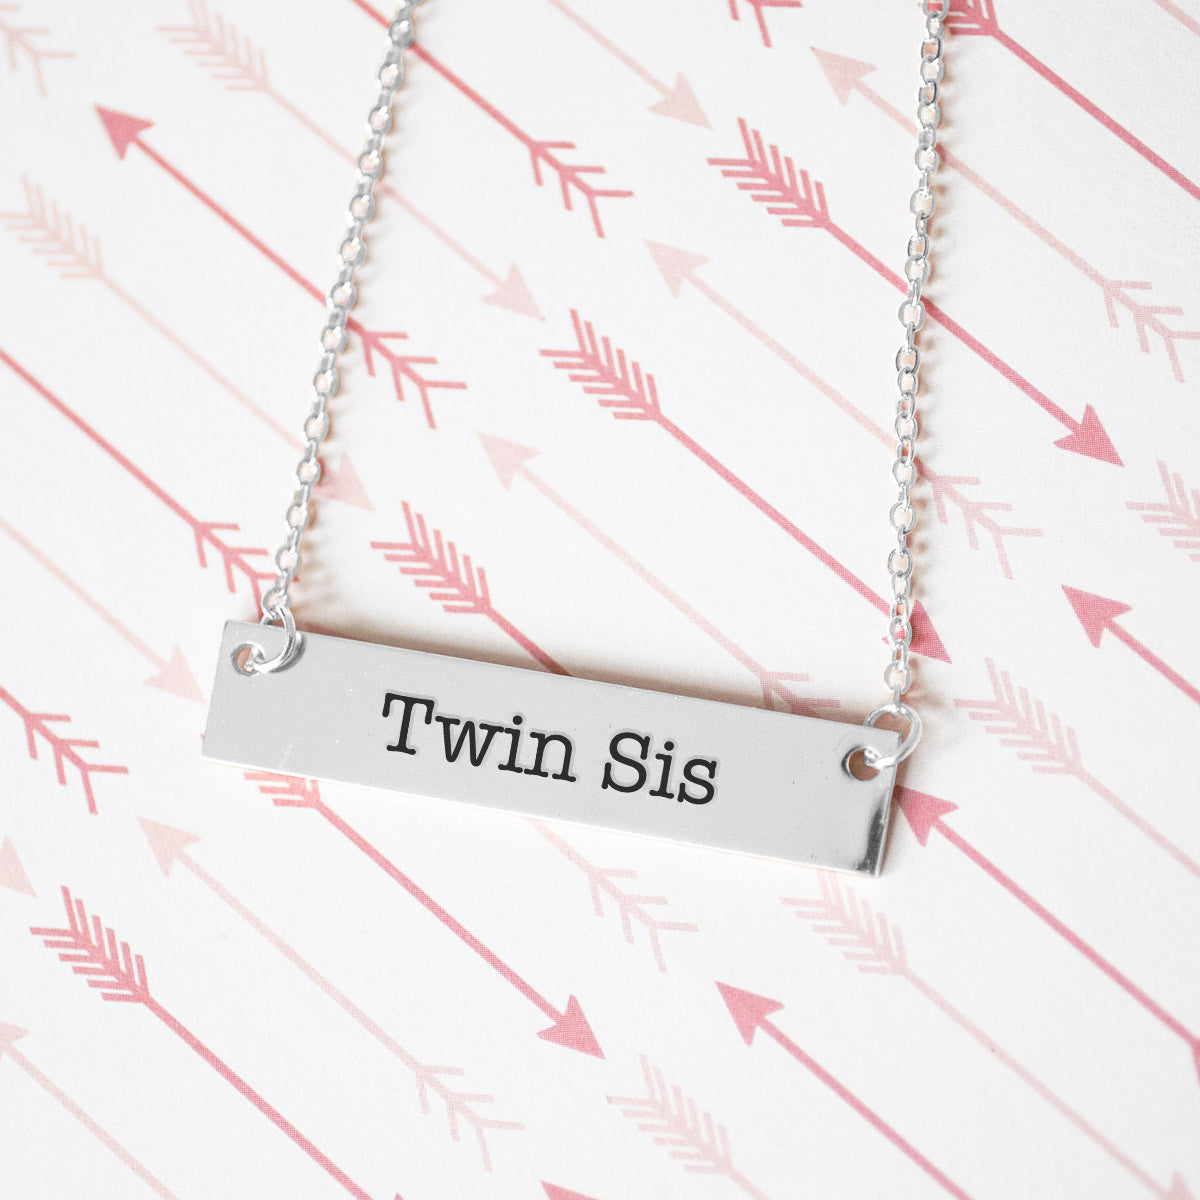 Twin Sister Gold / Silver Bar Necklace - Sister Gifts